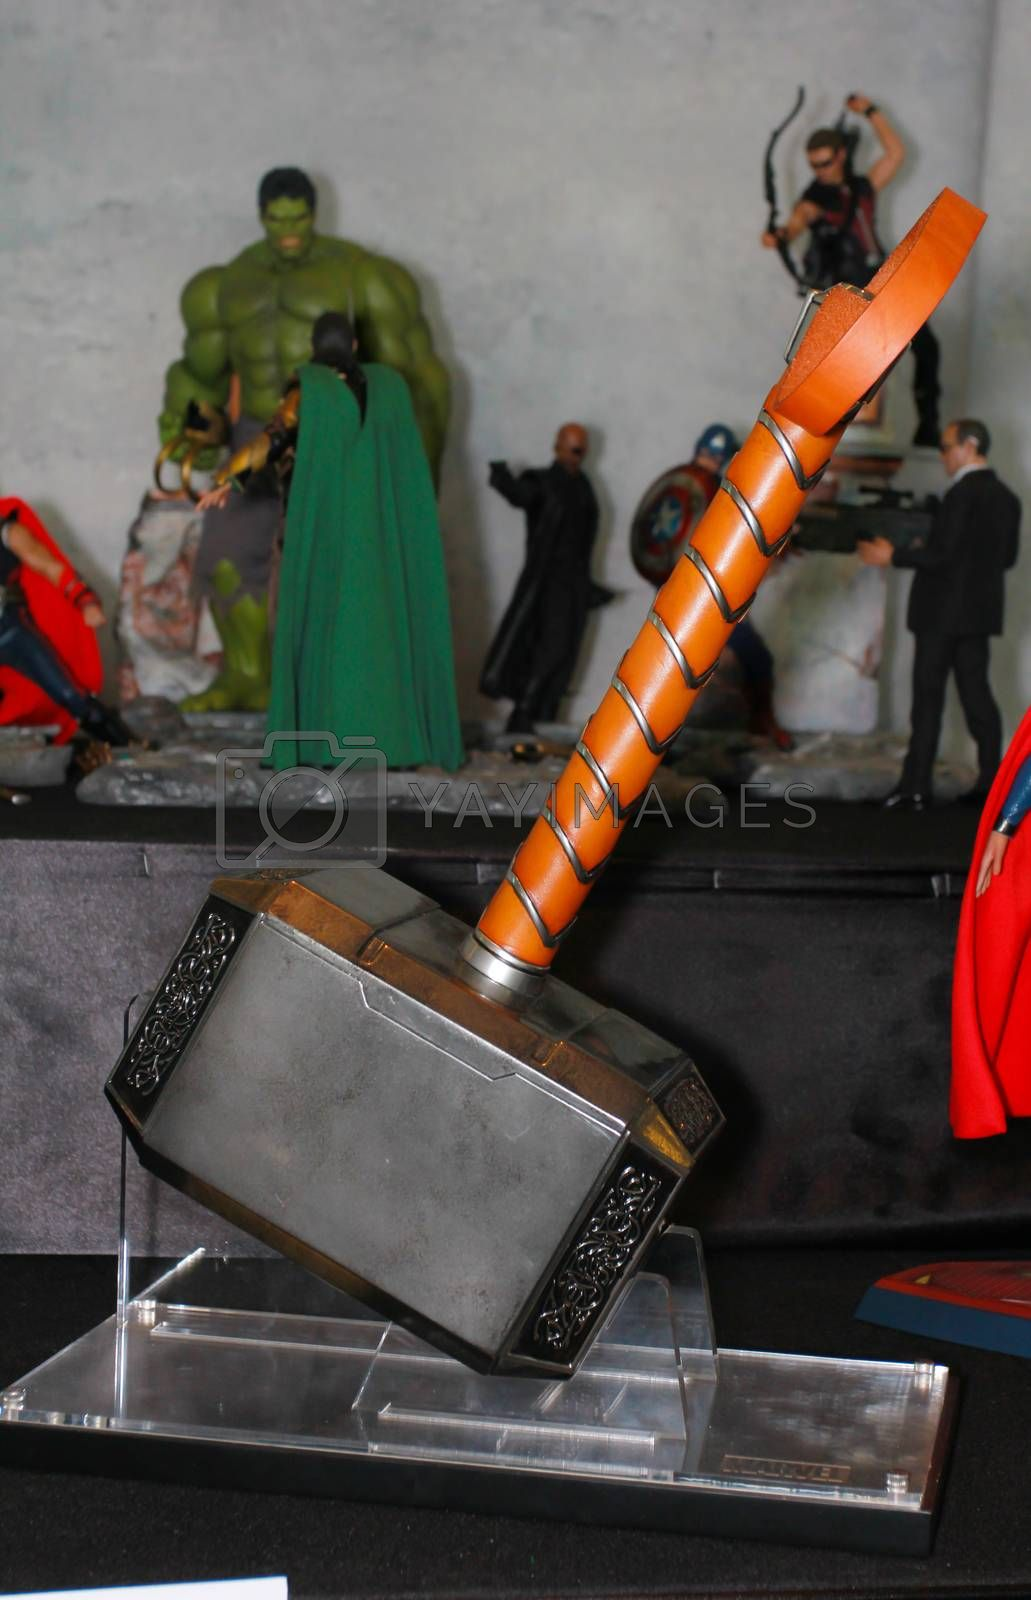 Royalty free image of A model of the Thor Hammer from the movies and comics 2 by redthirteen